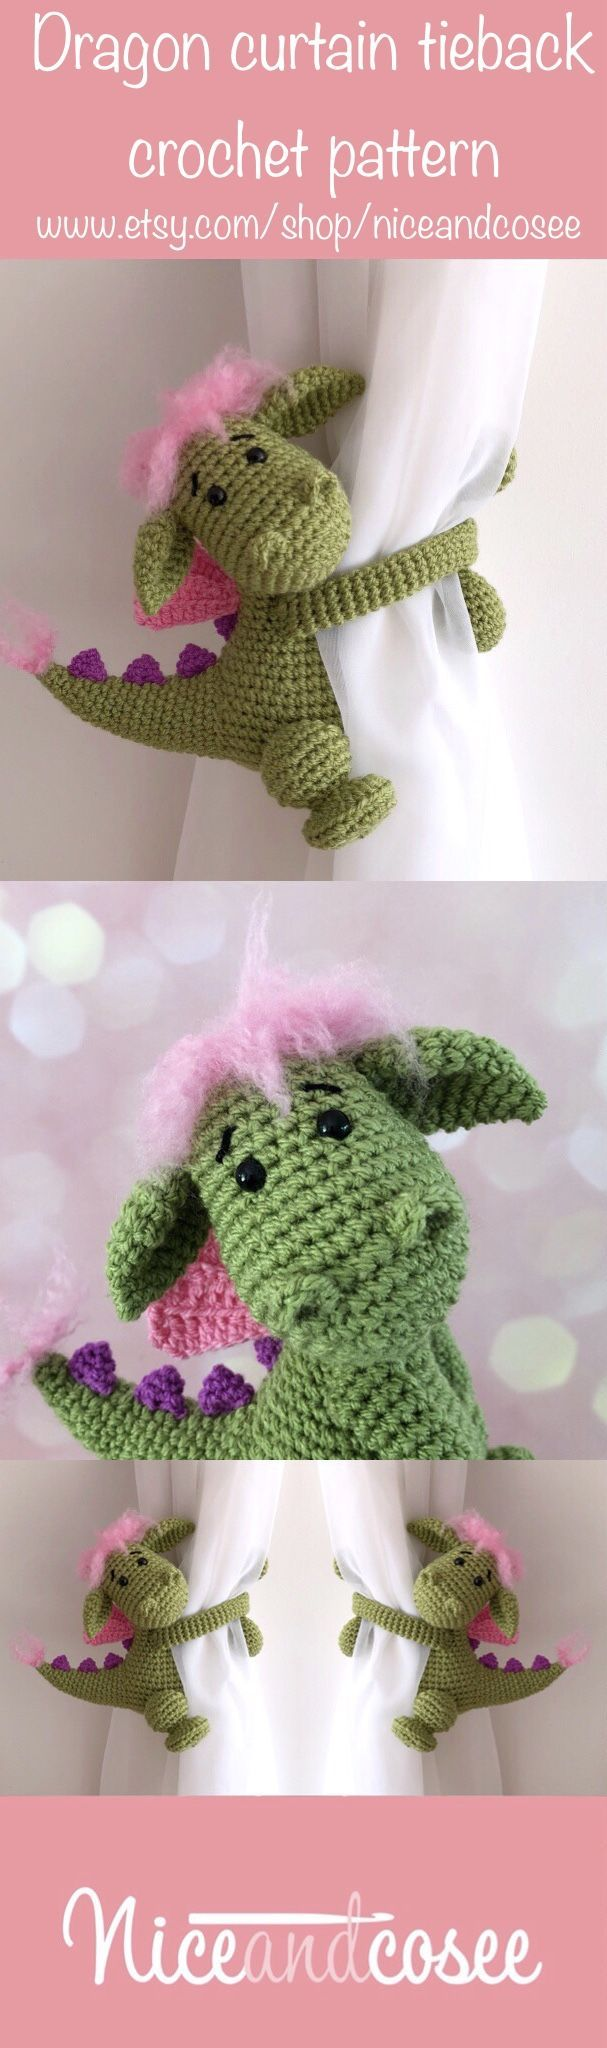 Dragon curtain tie back crochet PATTERN, tieback, left or right side crochet pattern PDF instant download amigurumi PATTERN – Anna Armstrong